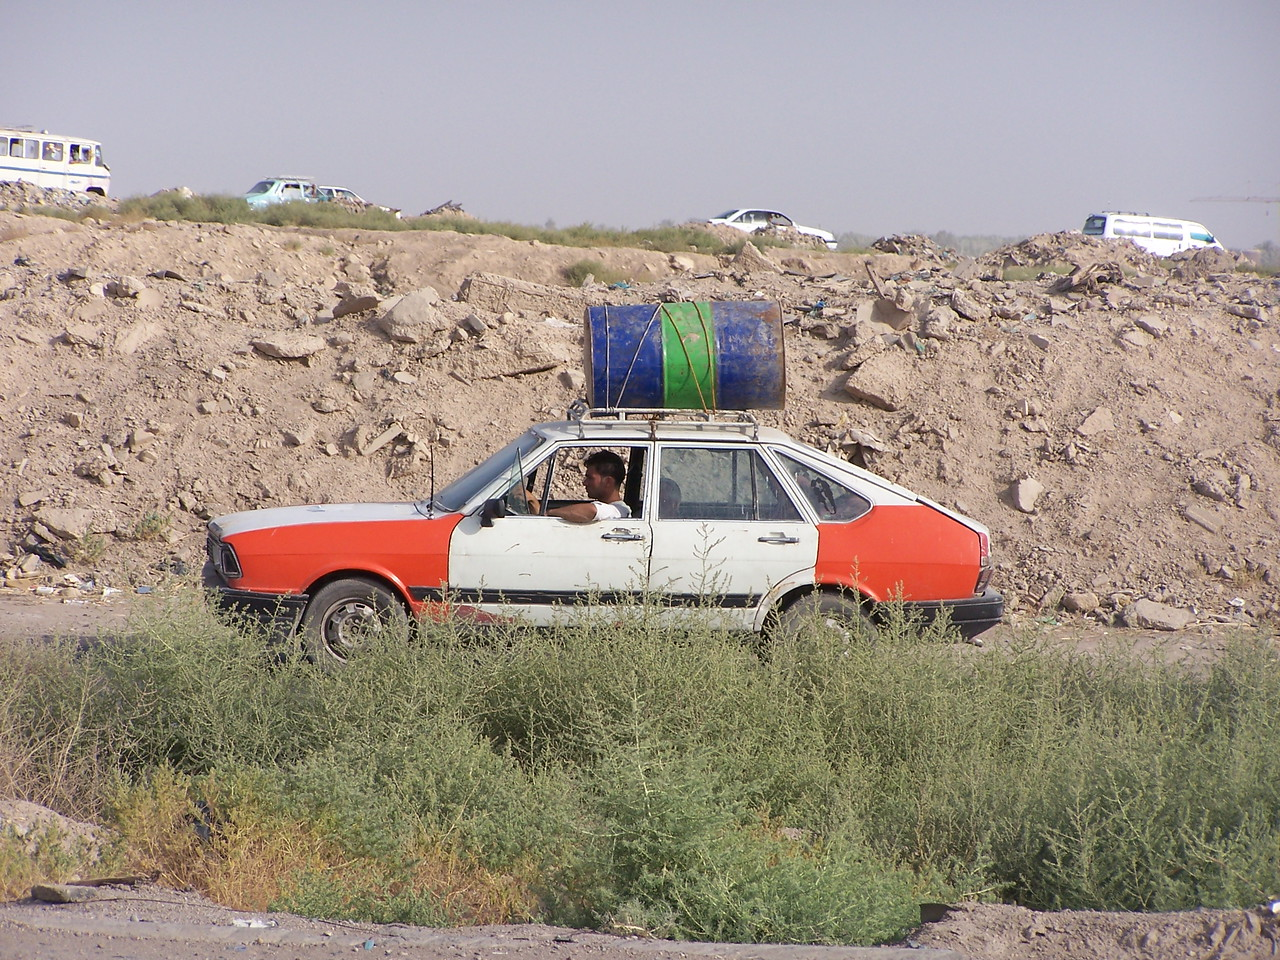 Lots of vehicles in Iraq look suspicious.  But few more than this one.